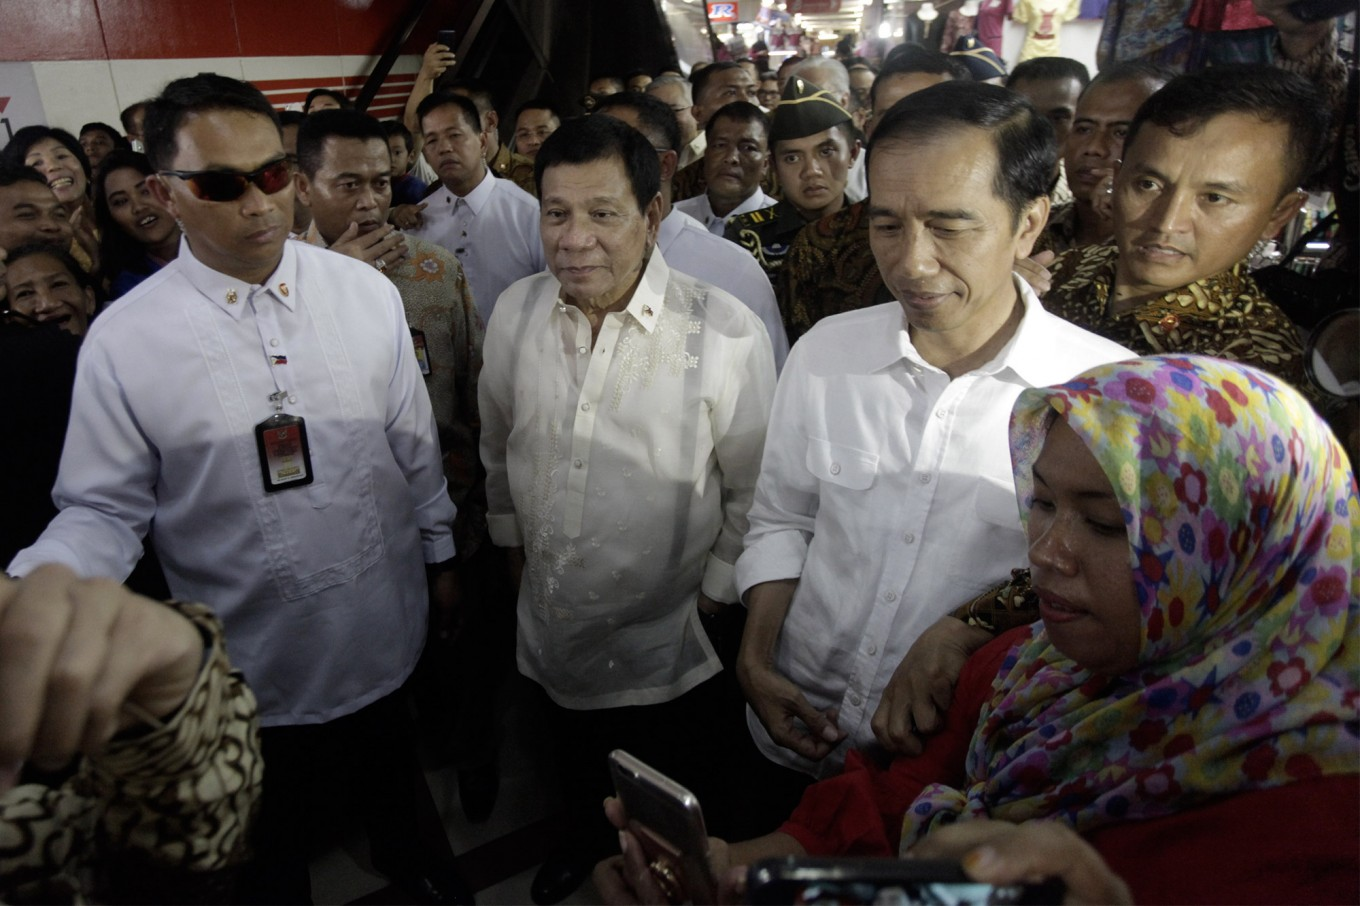 Jokowi welcomes Duterte with 'blusukan' at textile market